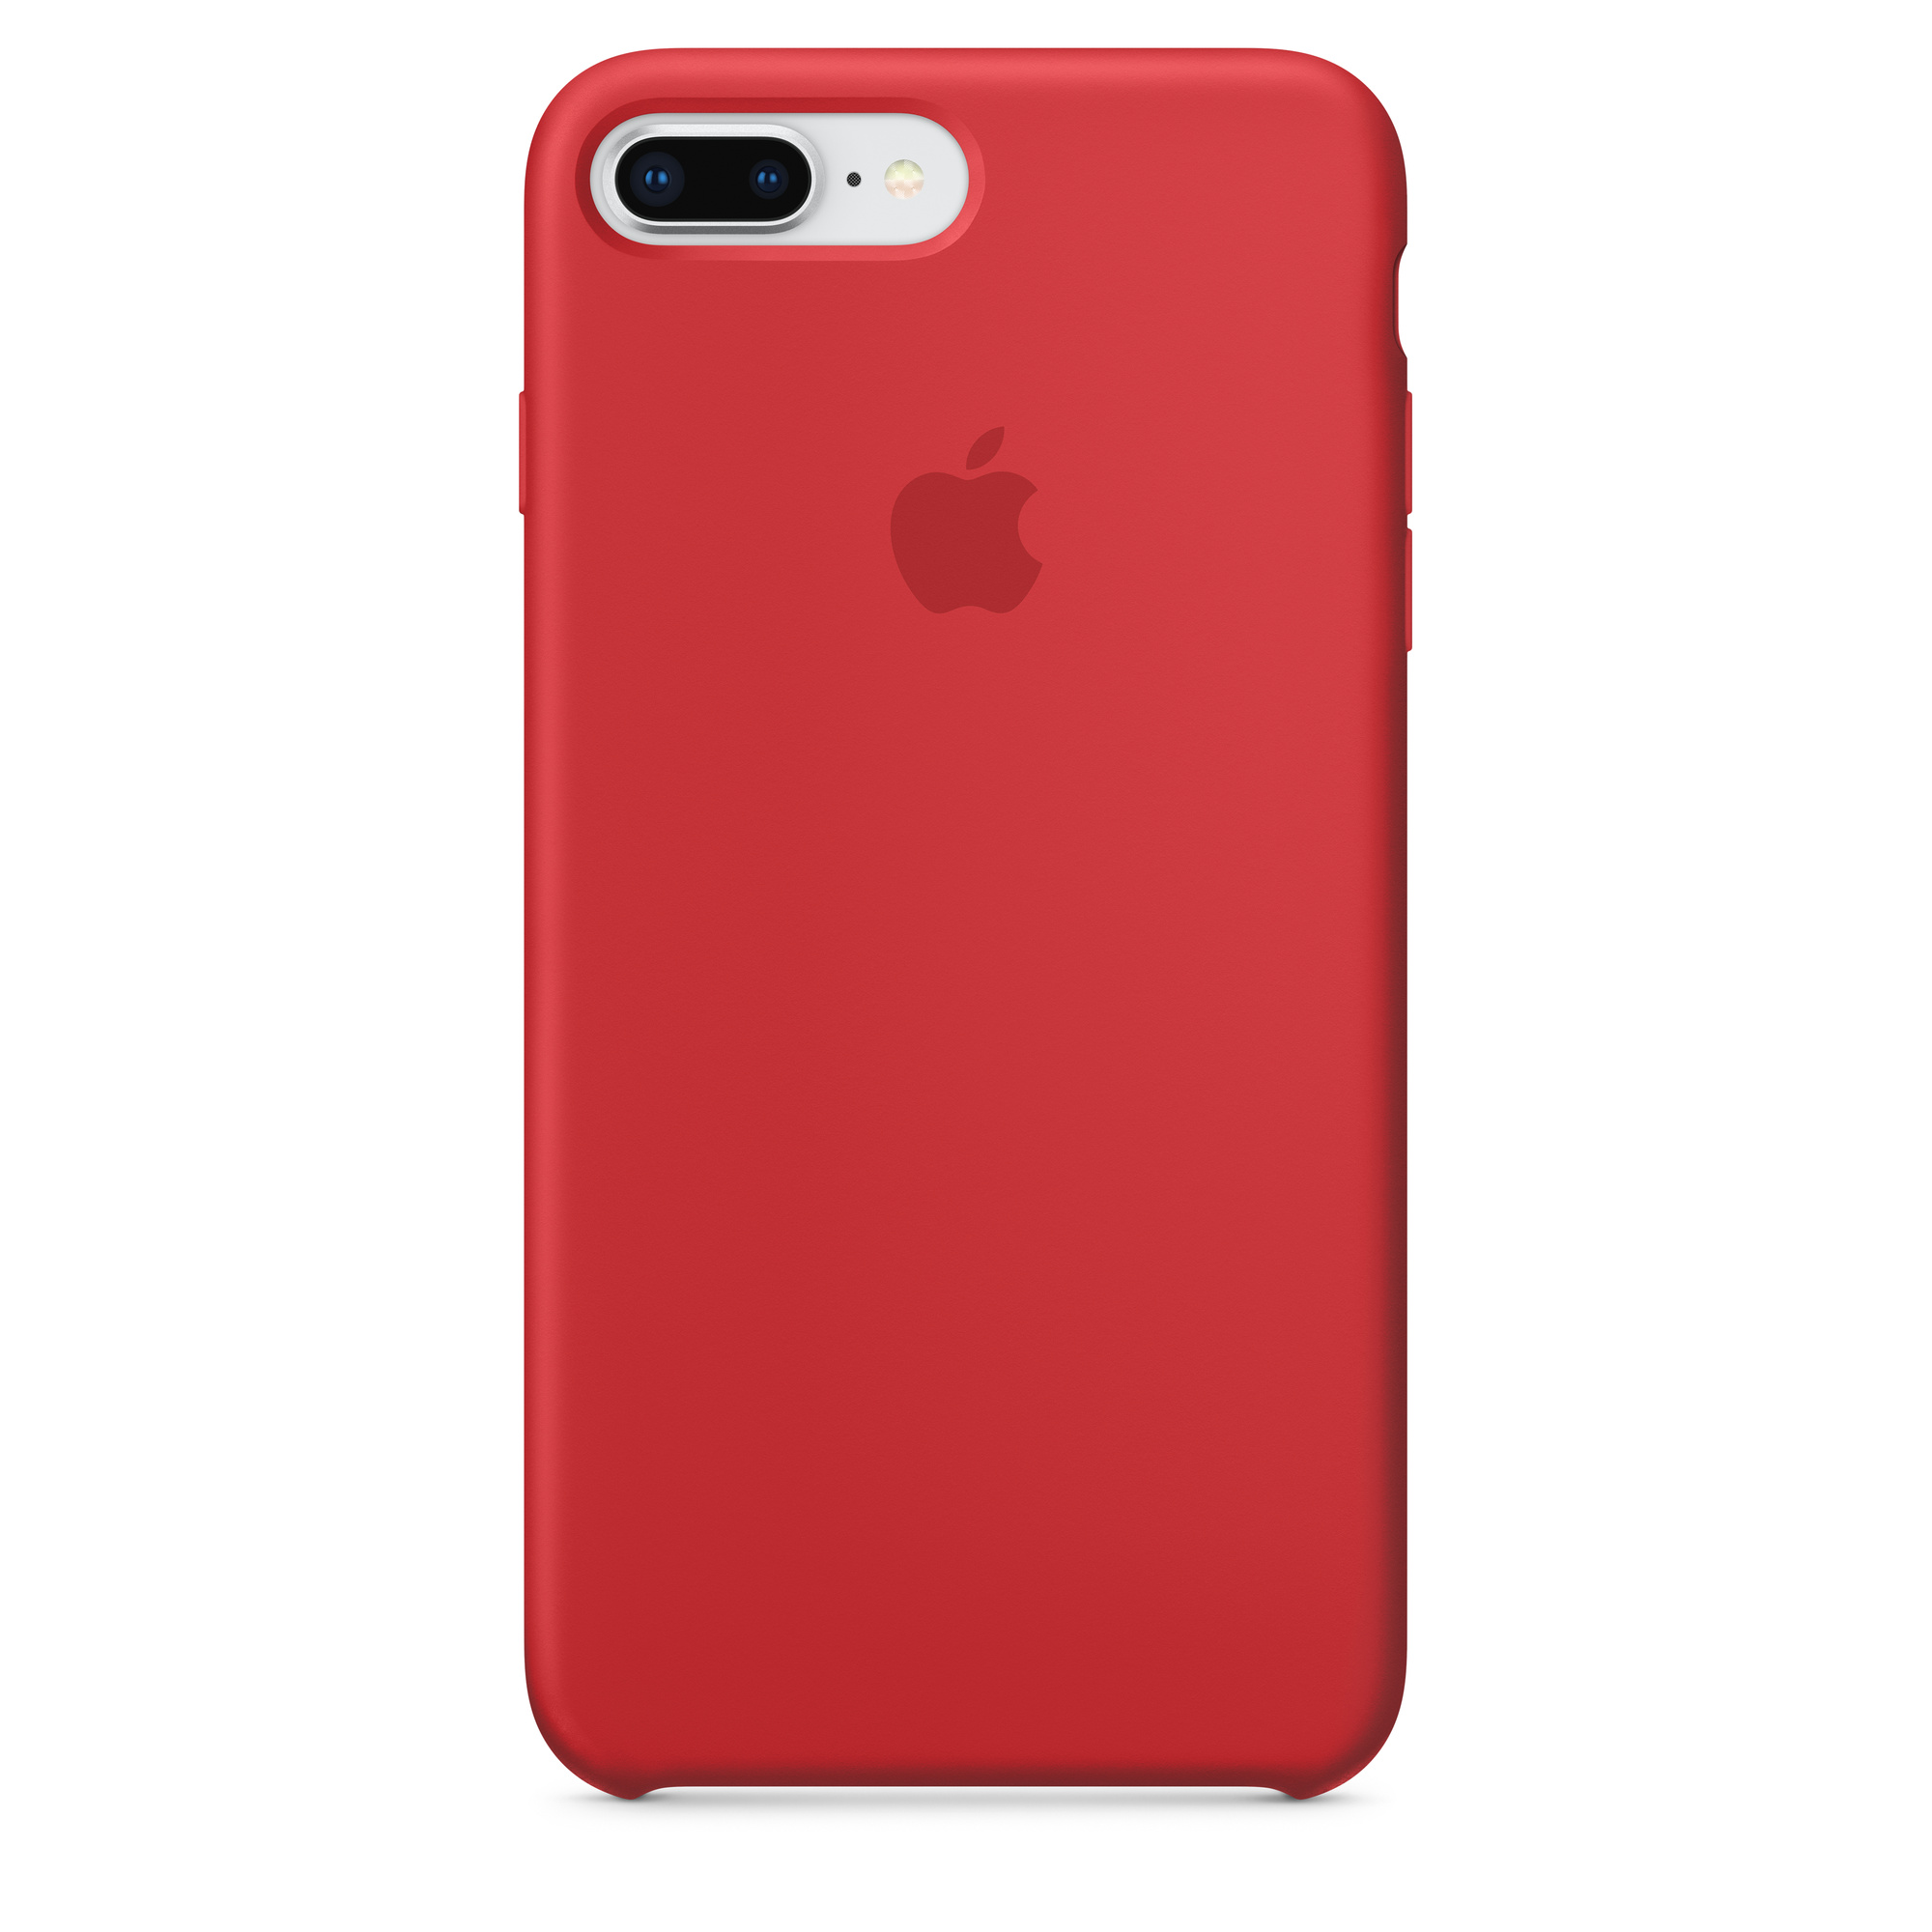 sports shoes 213e7 29dbc iPhone 8 Plus / 7 Plus Silicone Case - (PRODUCT)RED